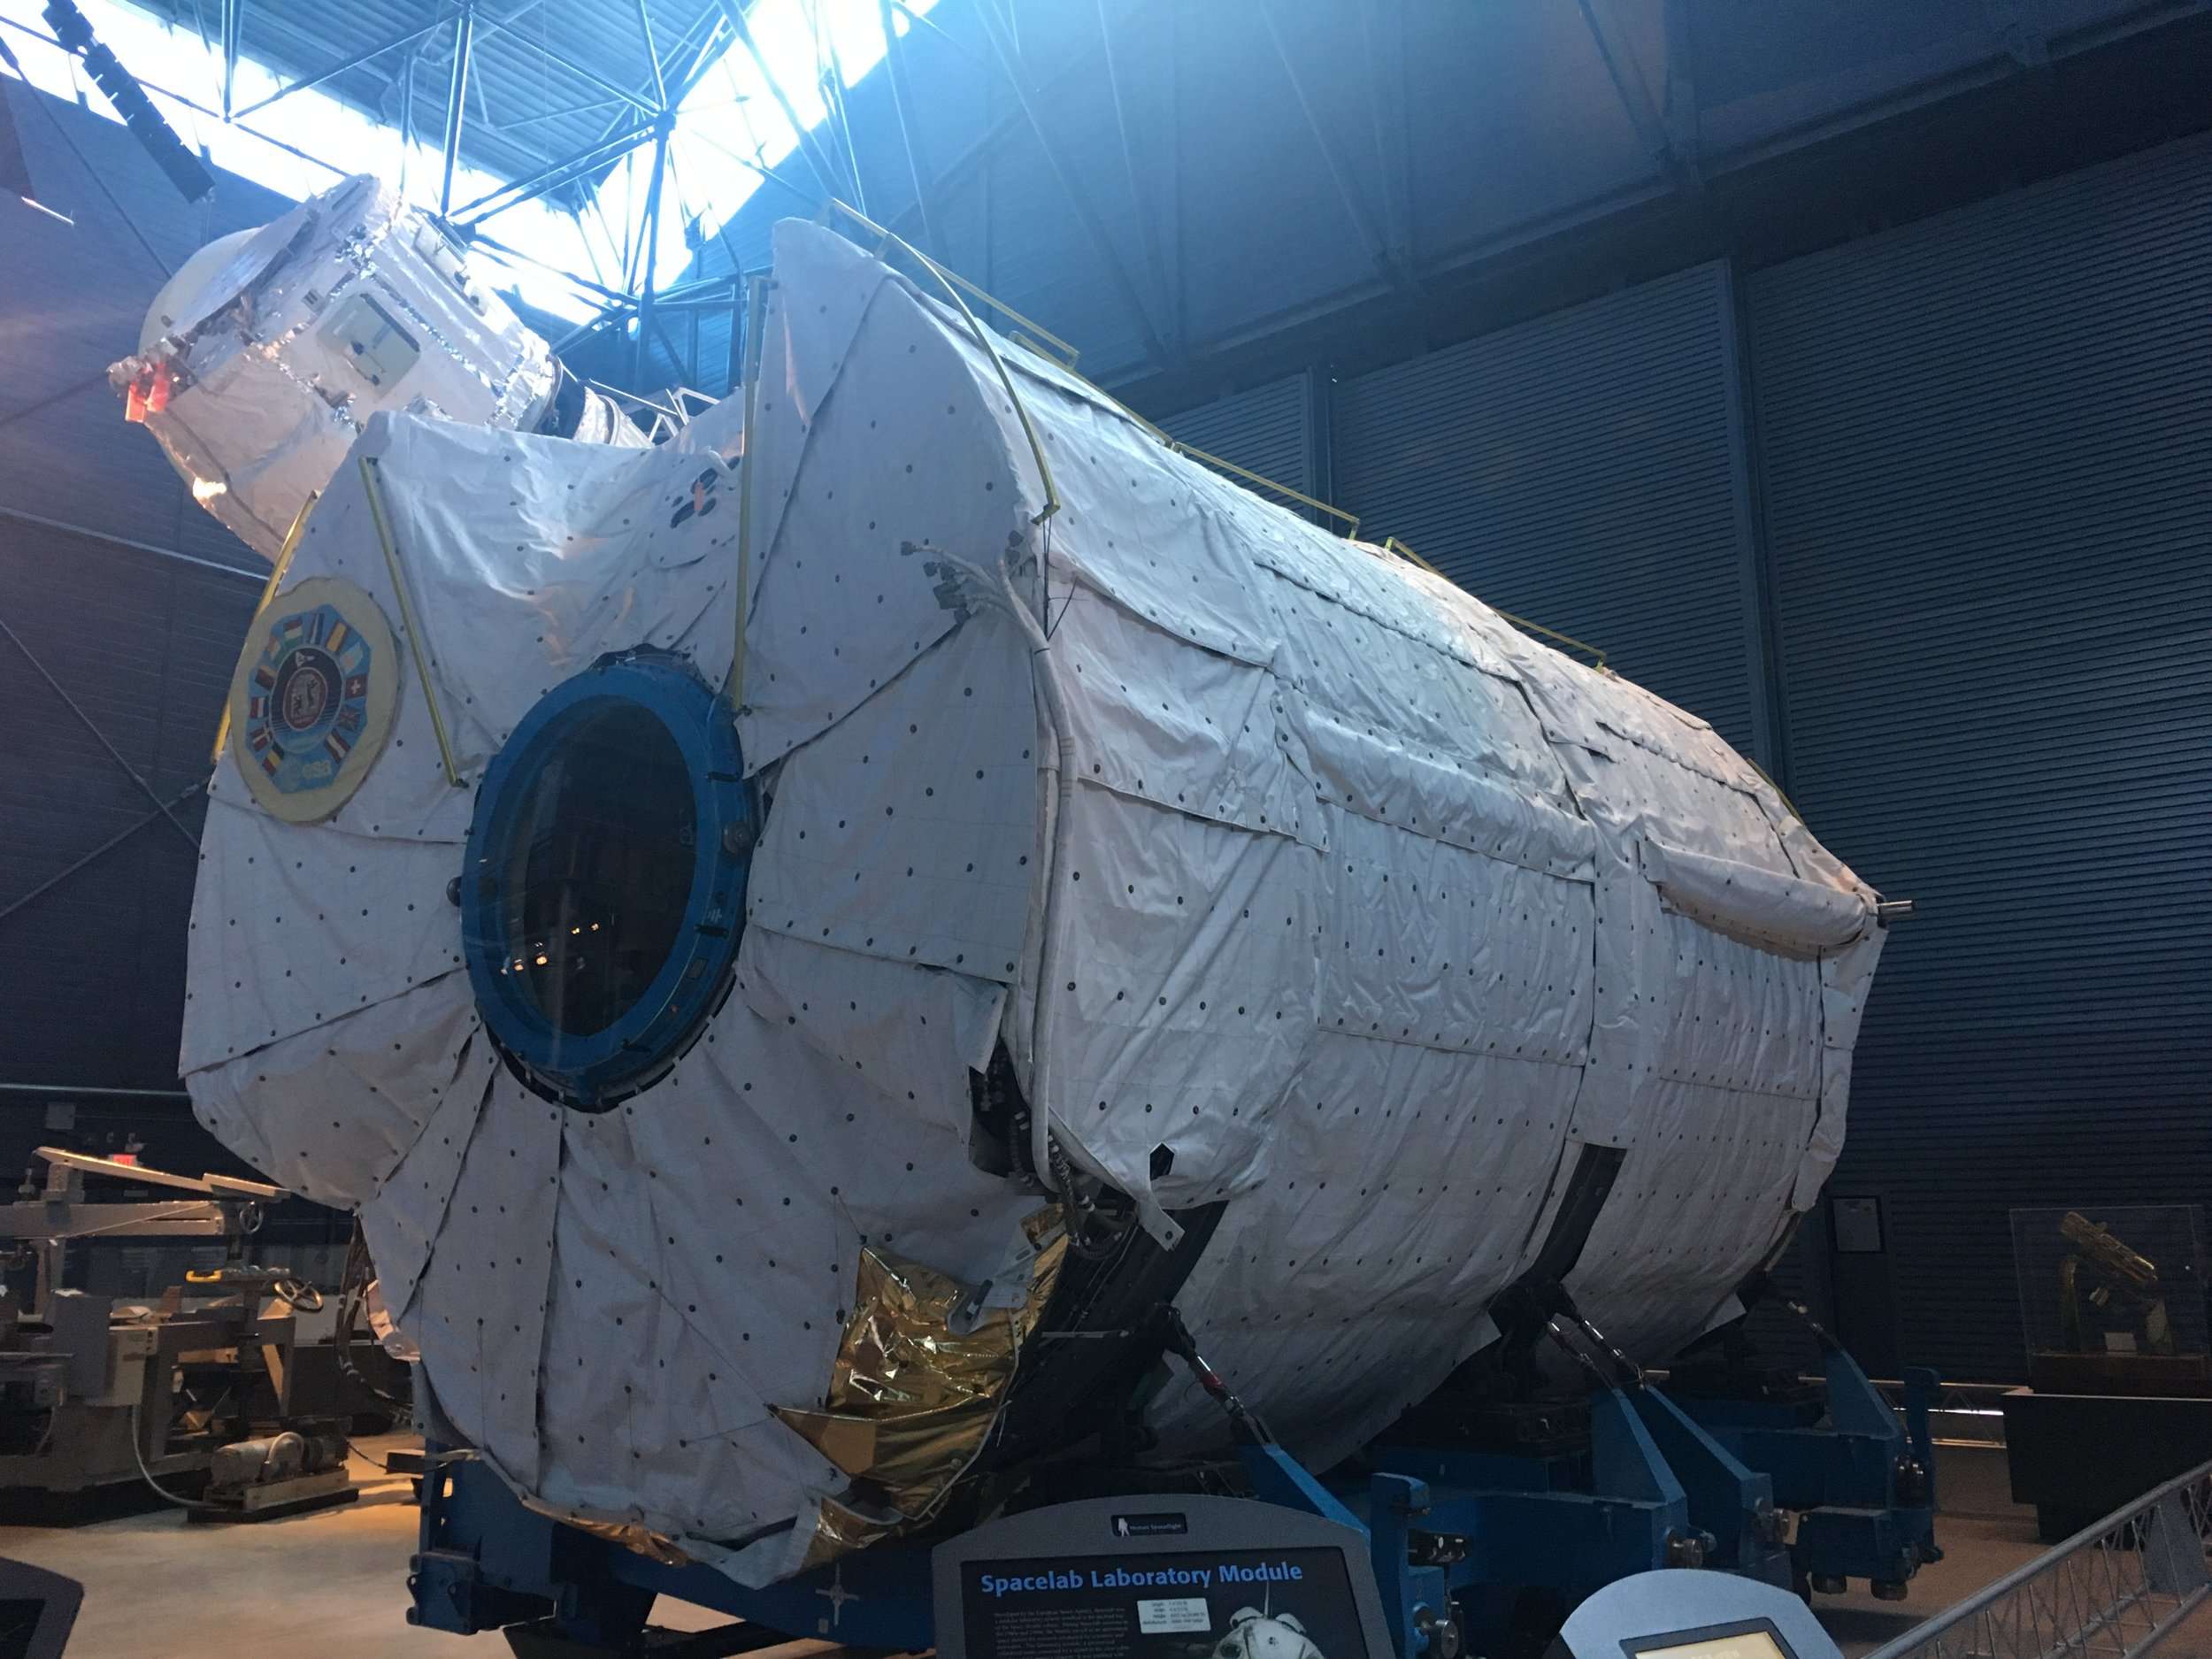 One of ESA's reusable Spacelab modules, LM-1, on display at the Smithsonian's Udvar-Hazy center. This laboratory, which fits in the Shuttle's payload bay, performed groundbreaking science in orbit, and was operated 24/7 on some missions. This particular module flew 9 times.